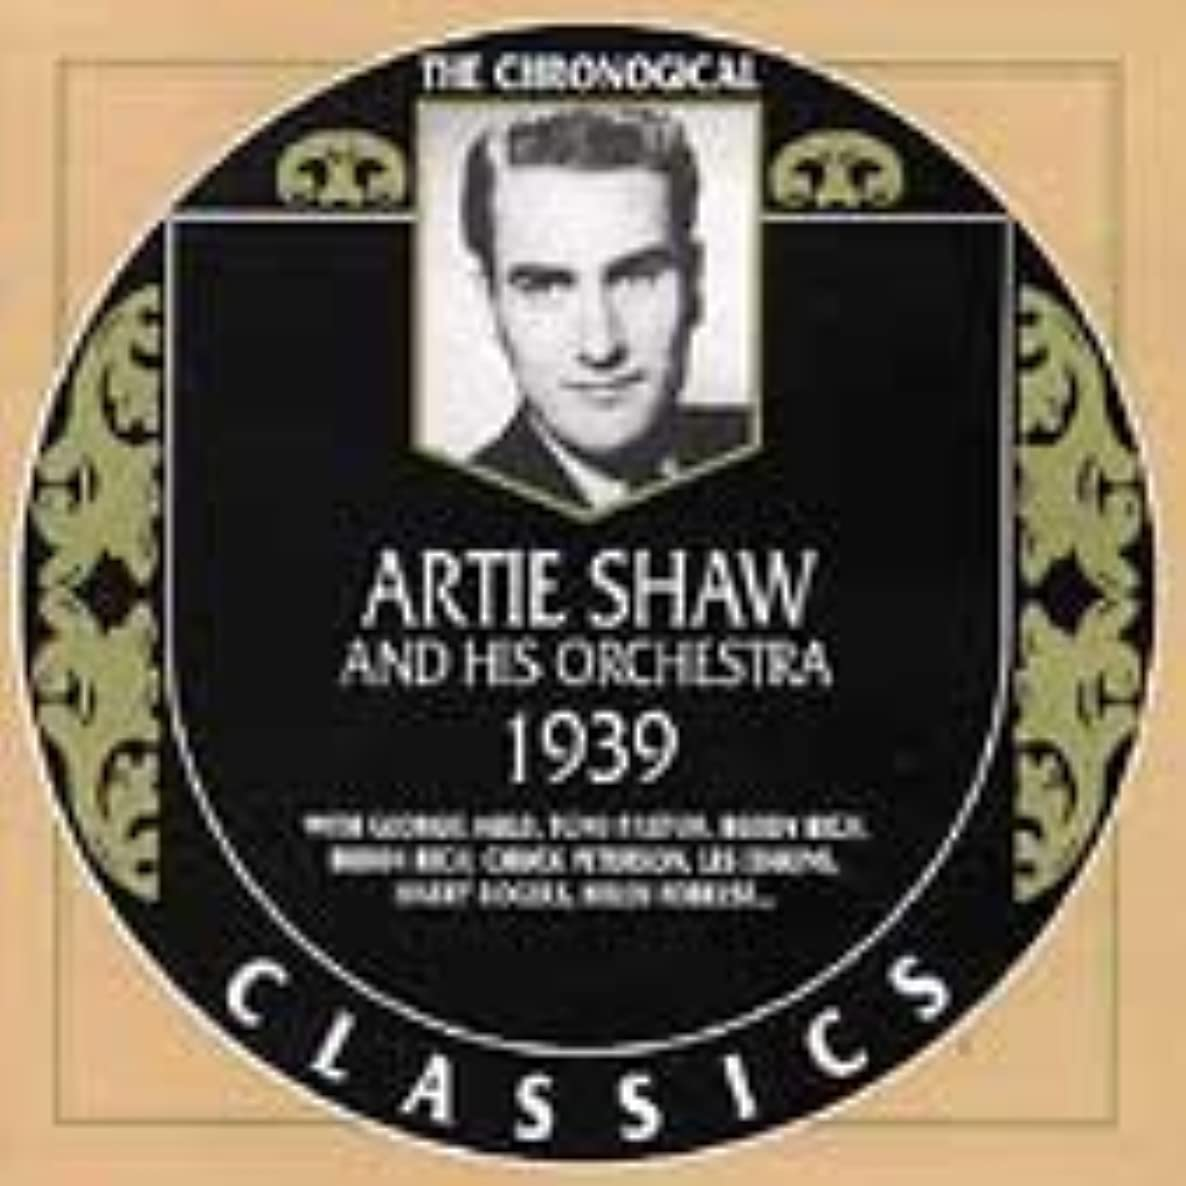 Artie Shaw and his Orchestra, 1939